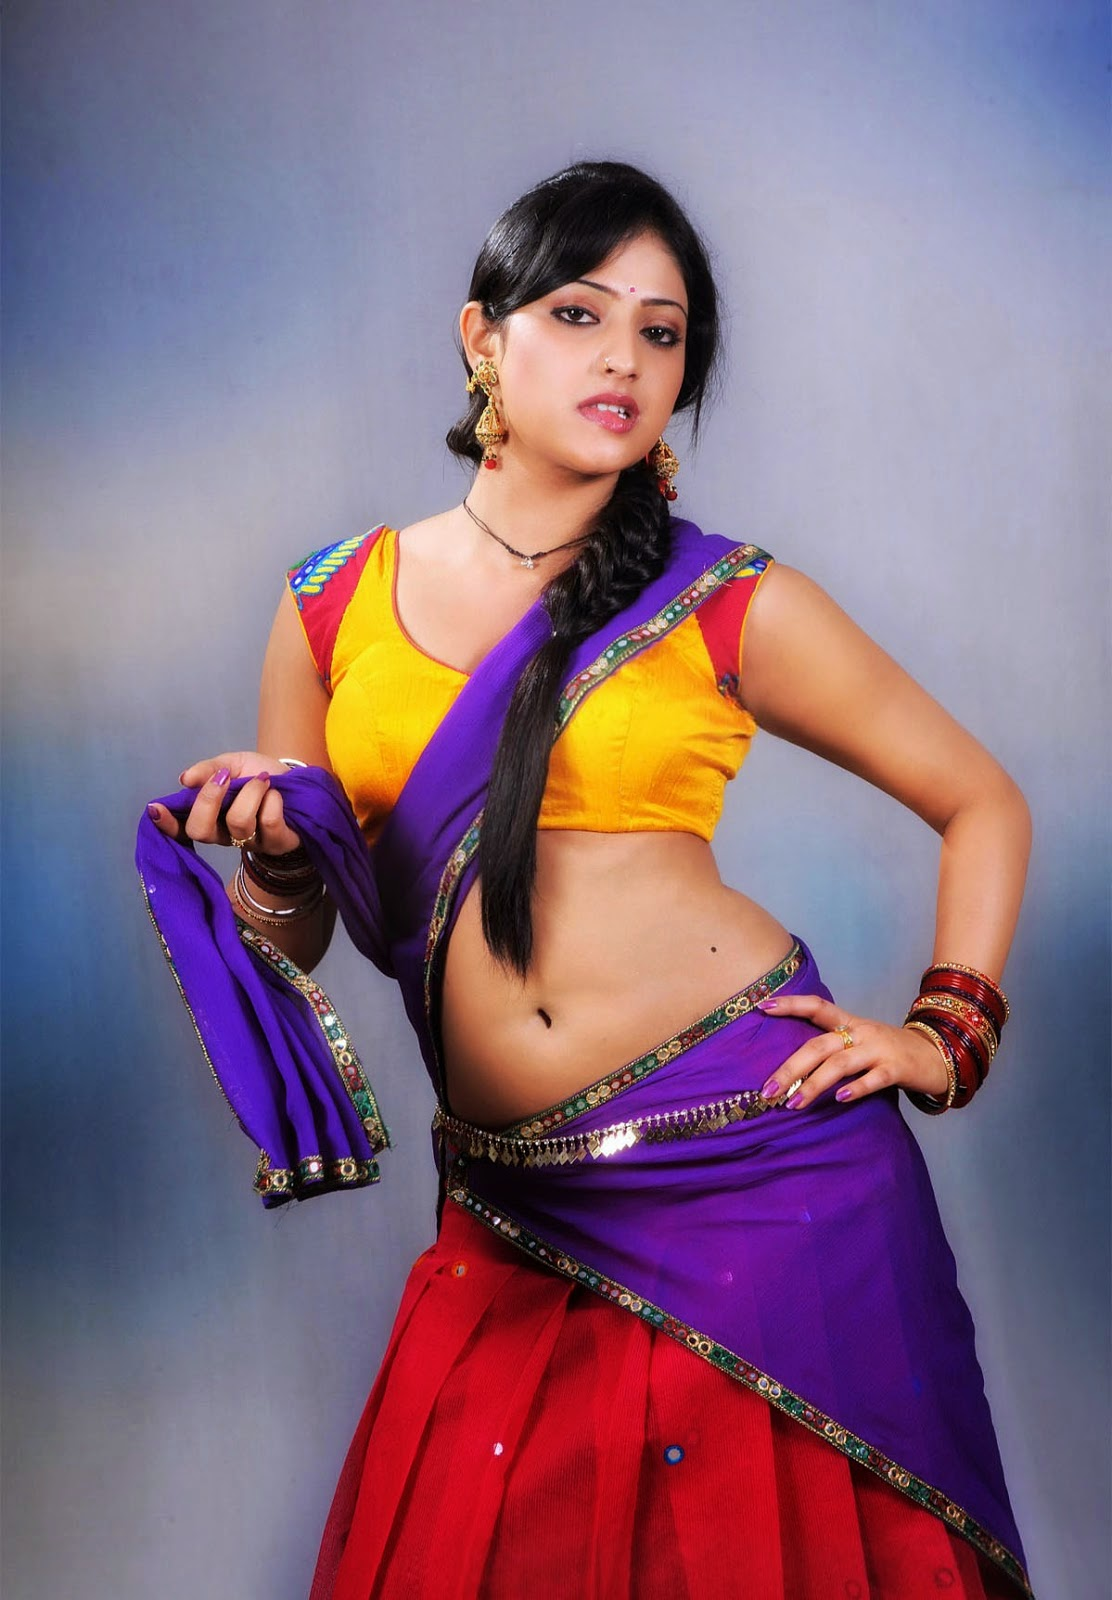 Hari Priya in a Village girl attire wearing Half Saree